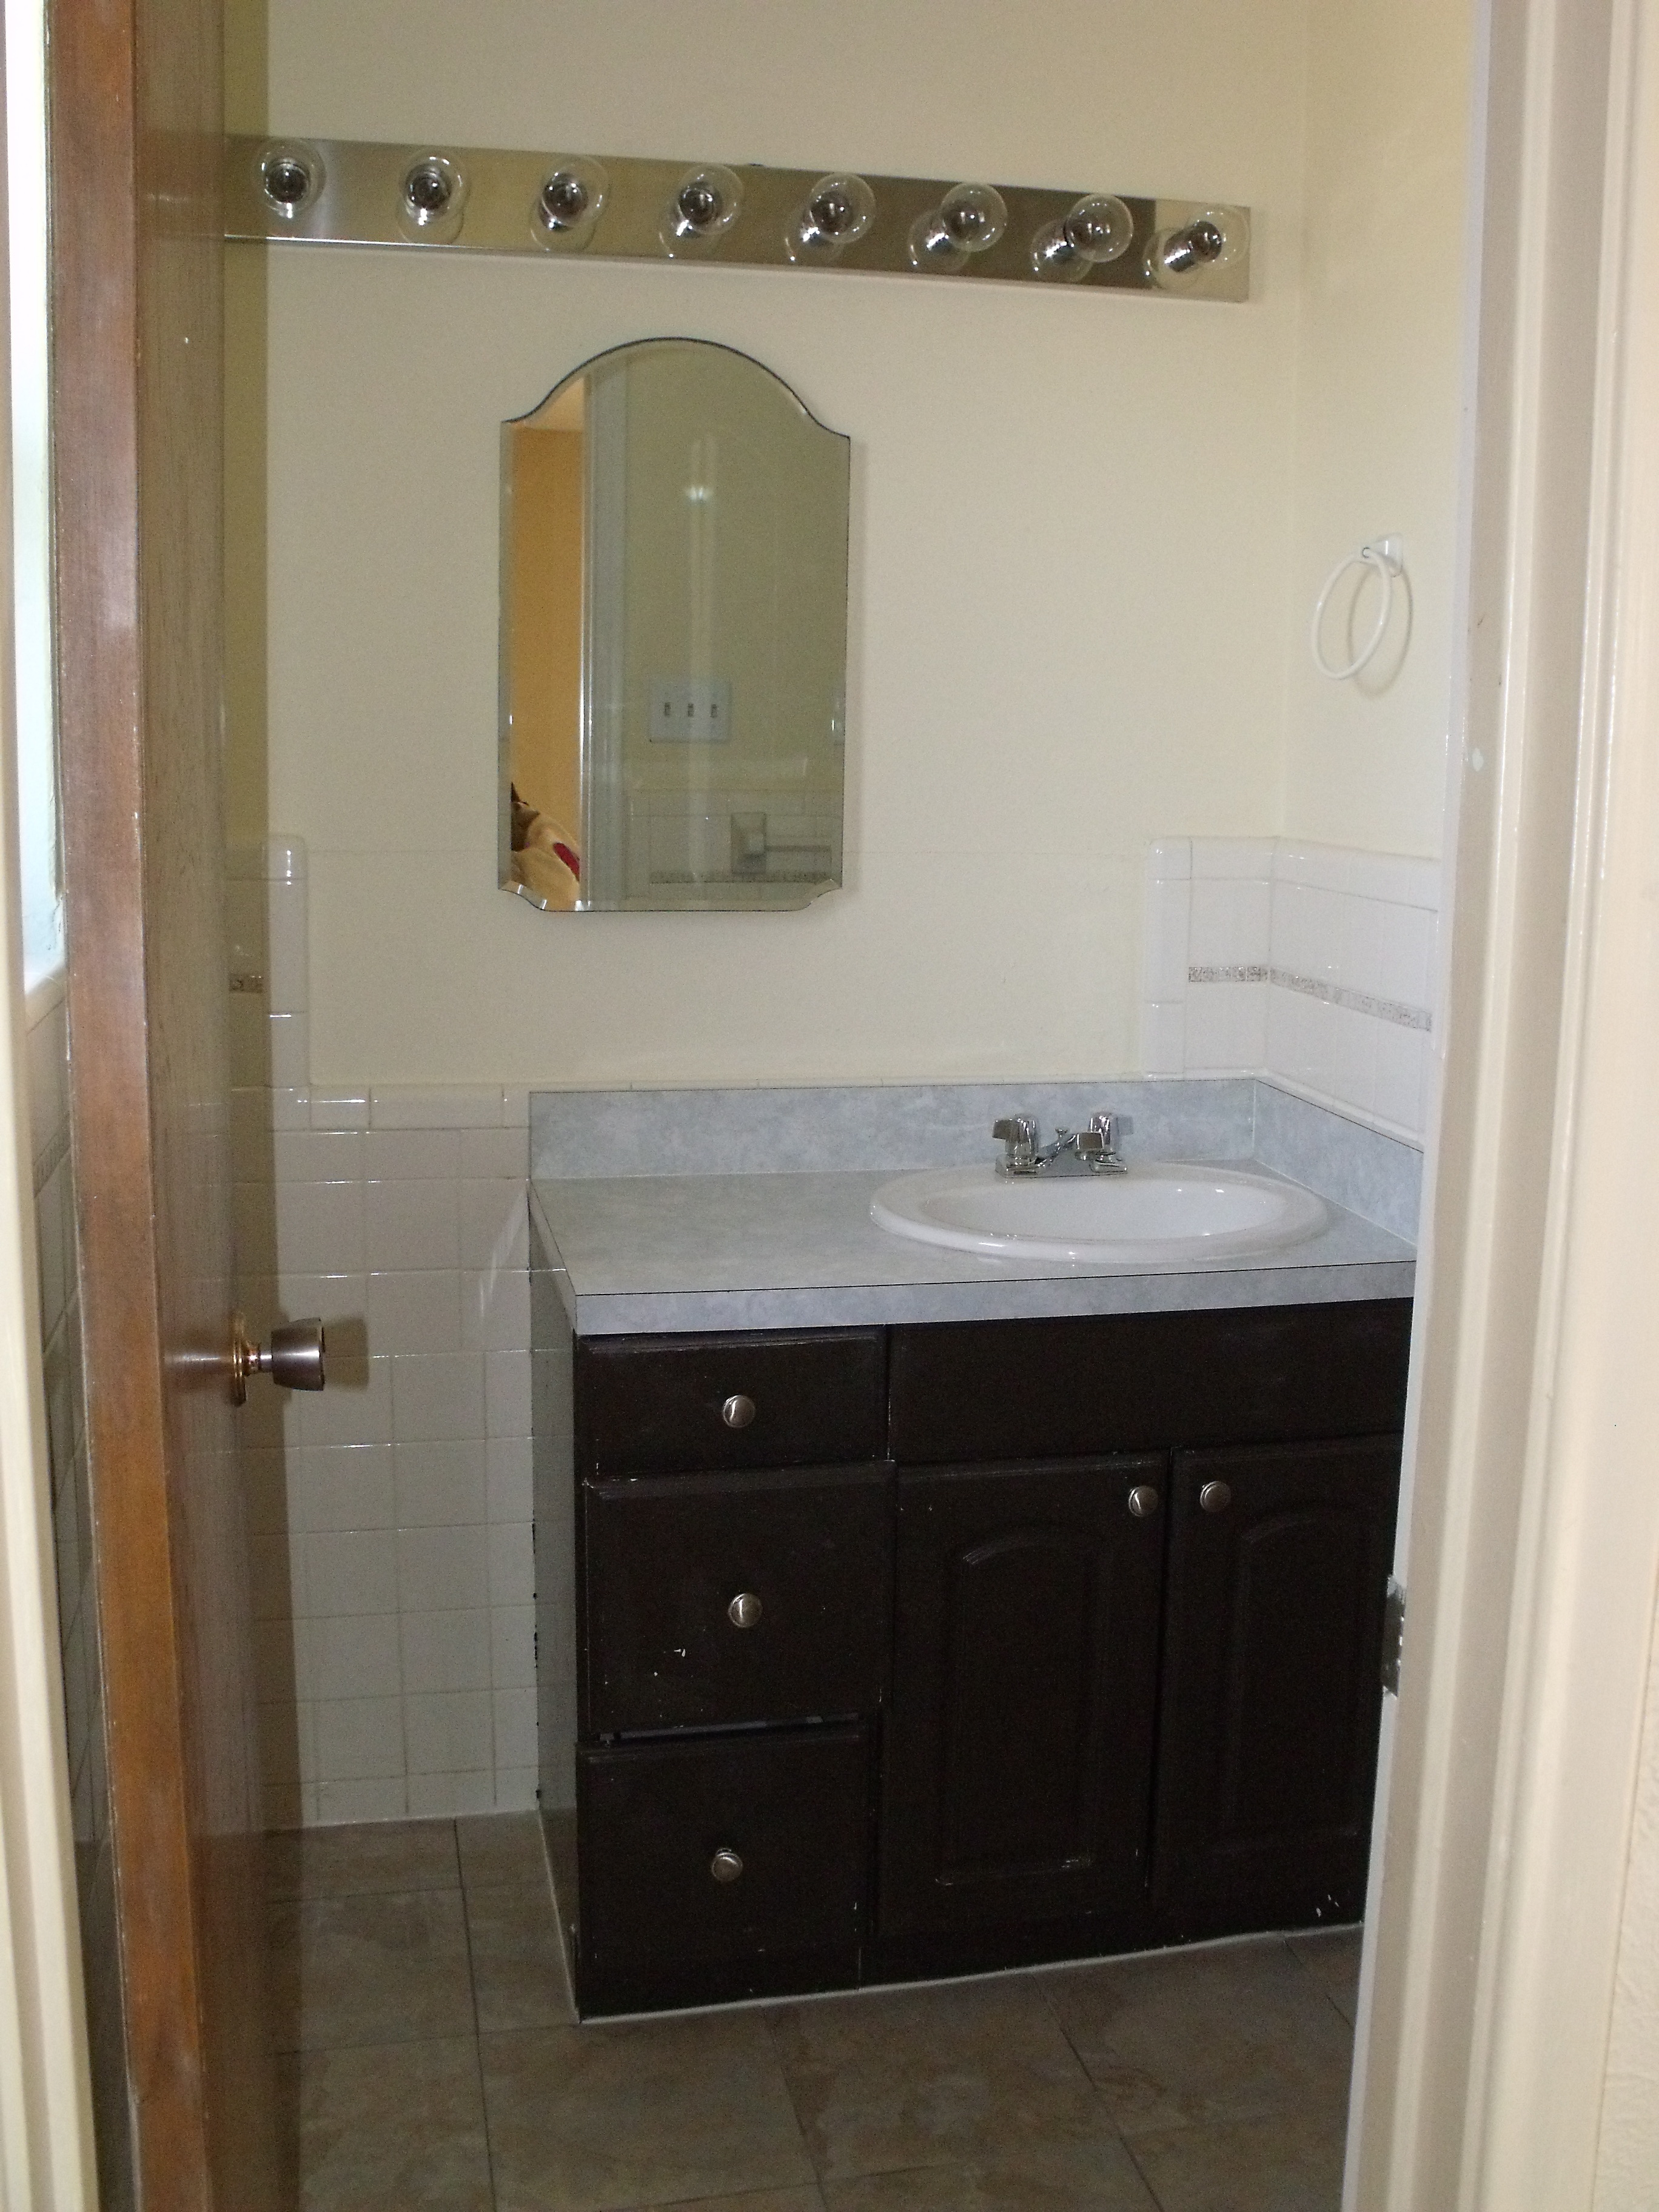 Bathroom Light Not Centered Over Sink driving out the darkness… | the cavender diary